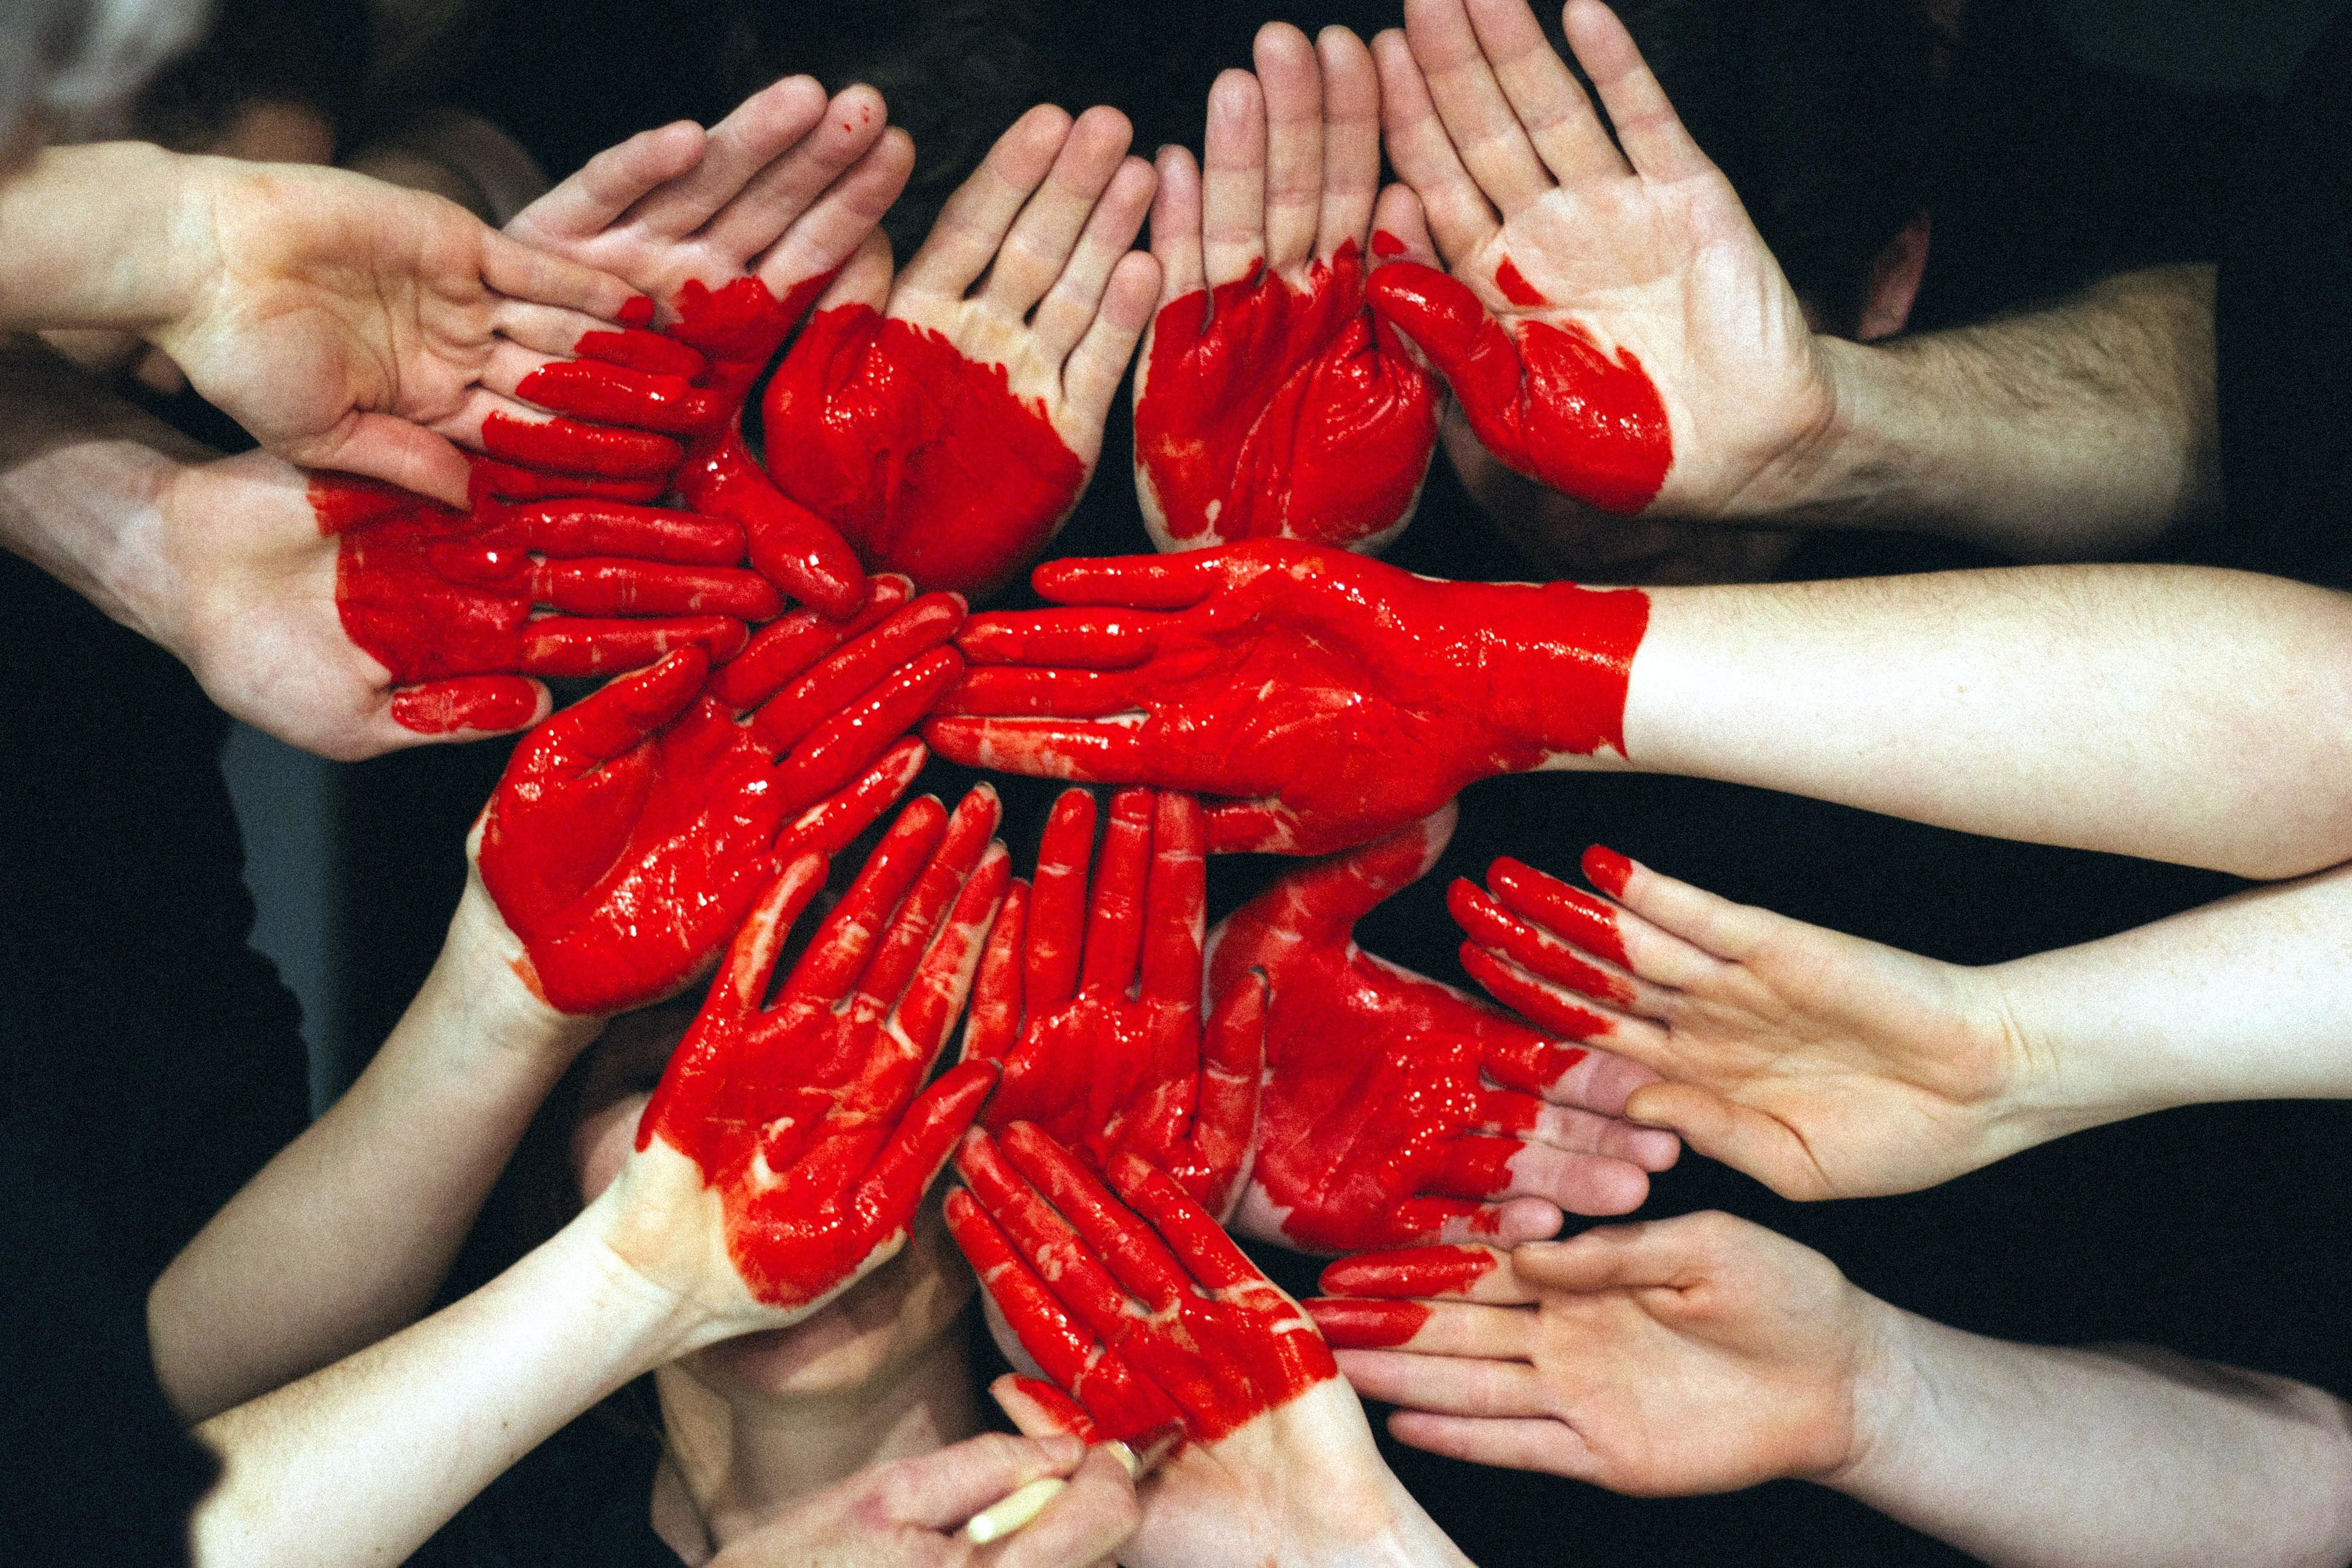 Hands all coming together with a painted red heart drawn on them